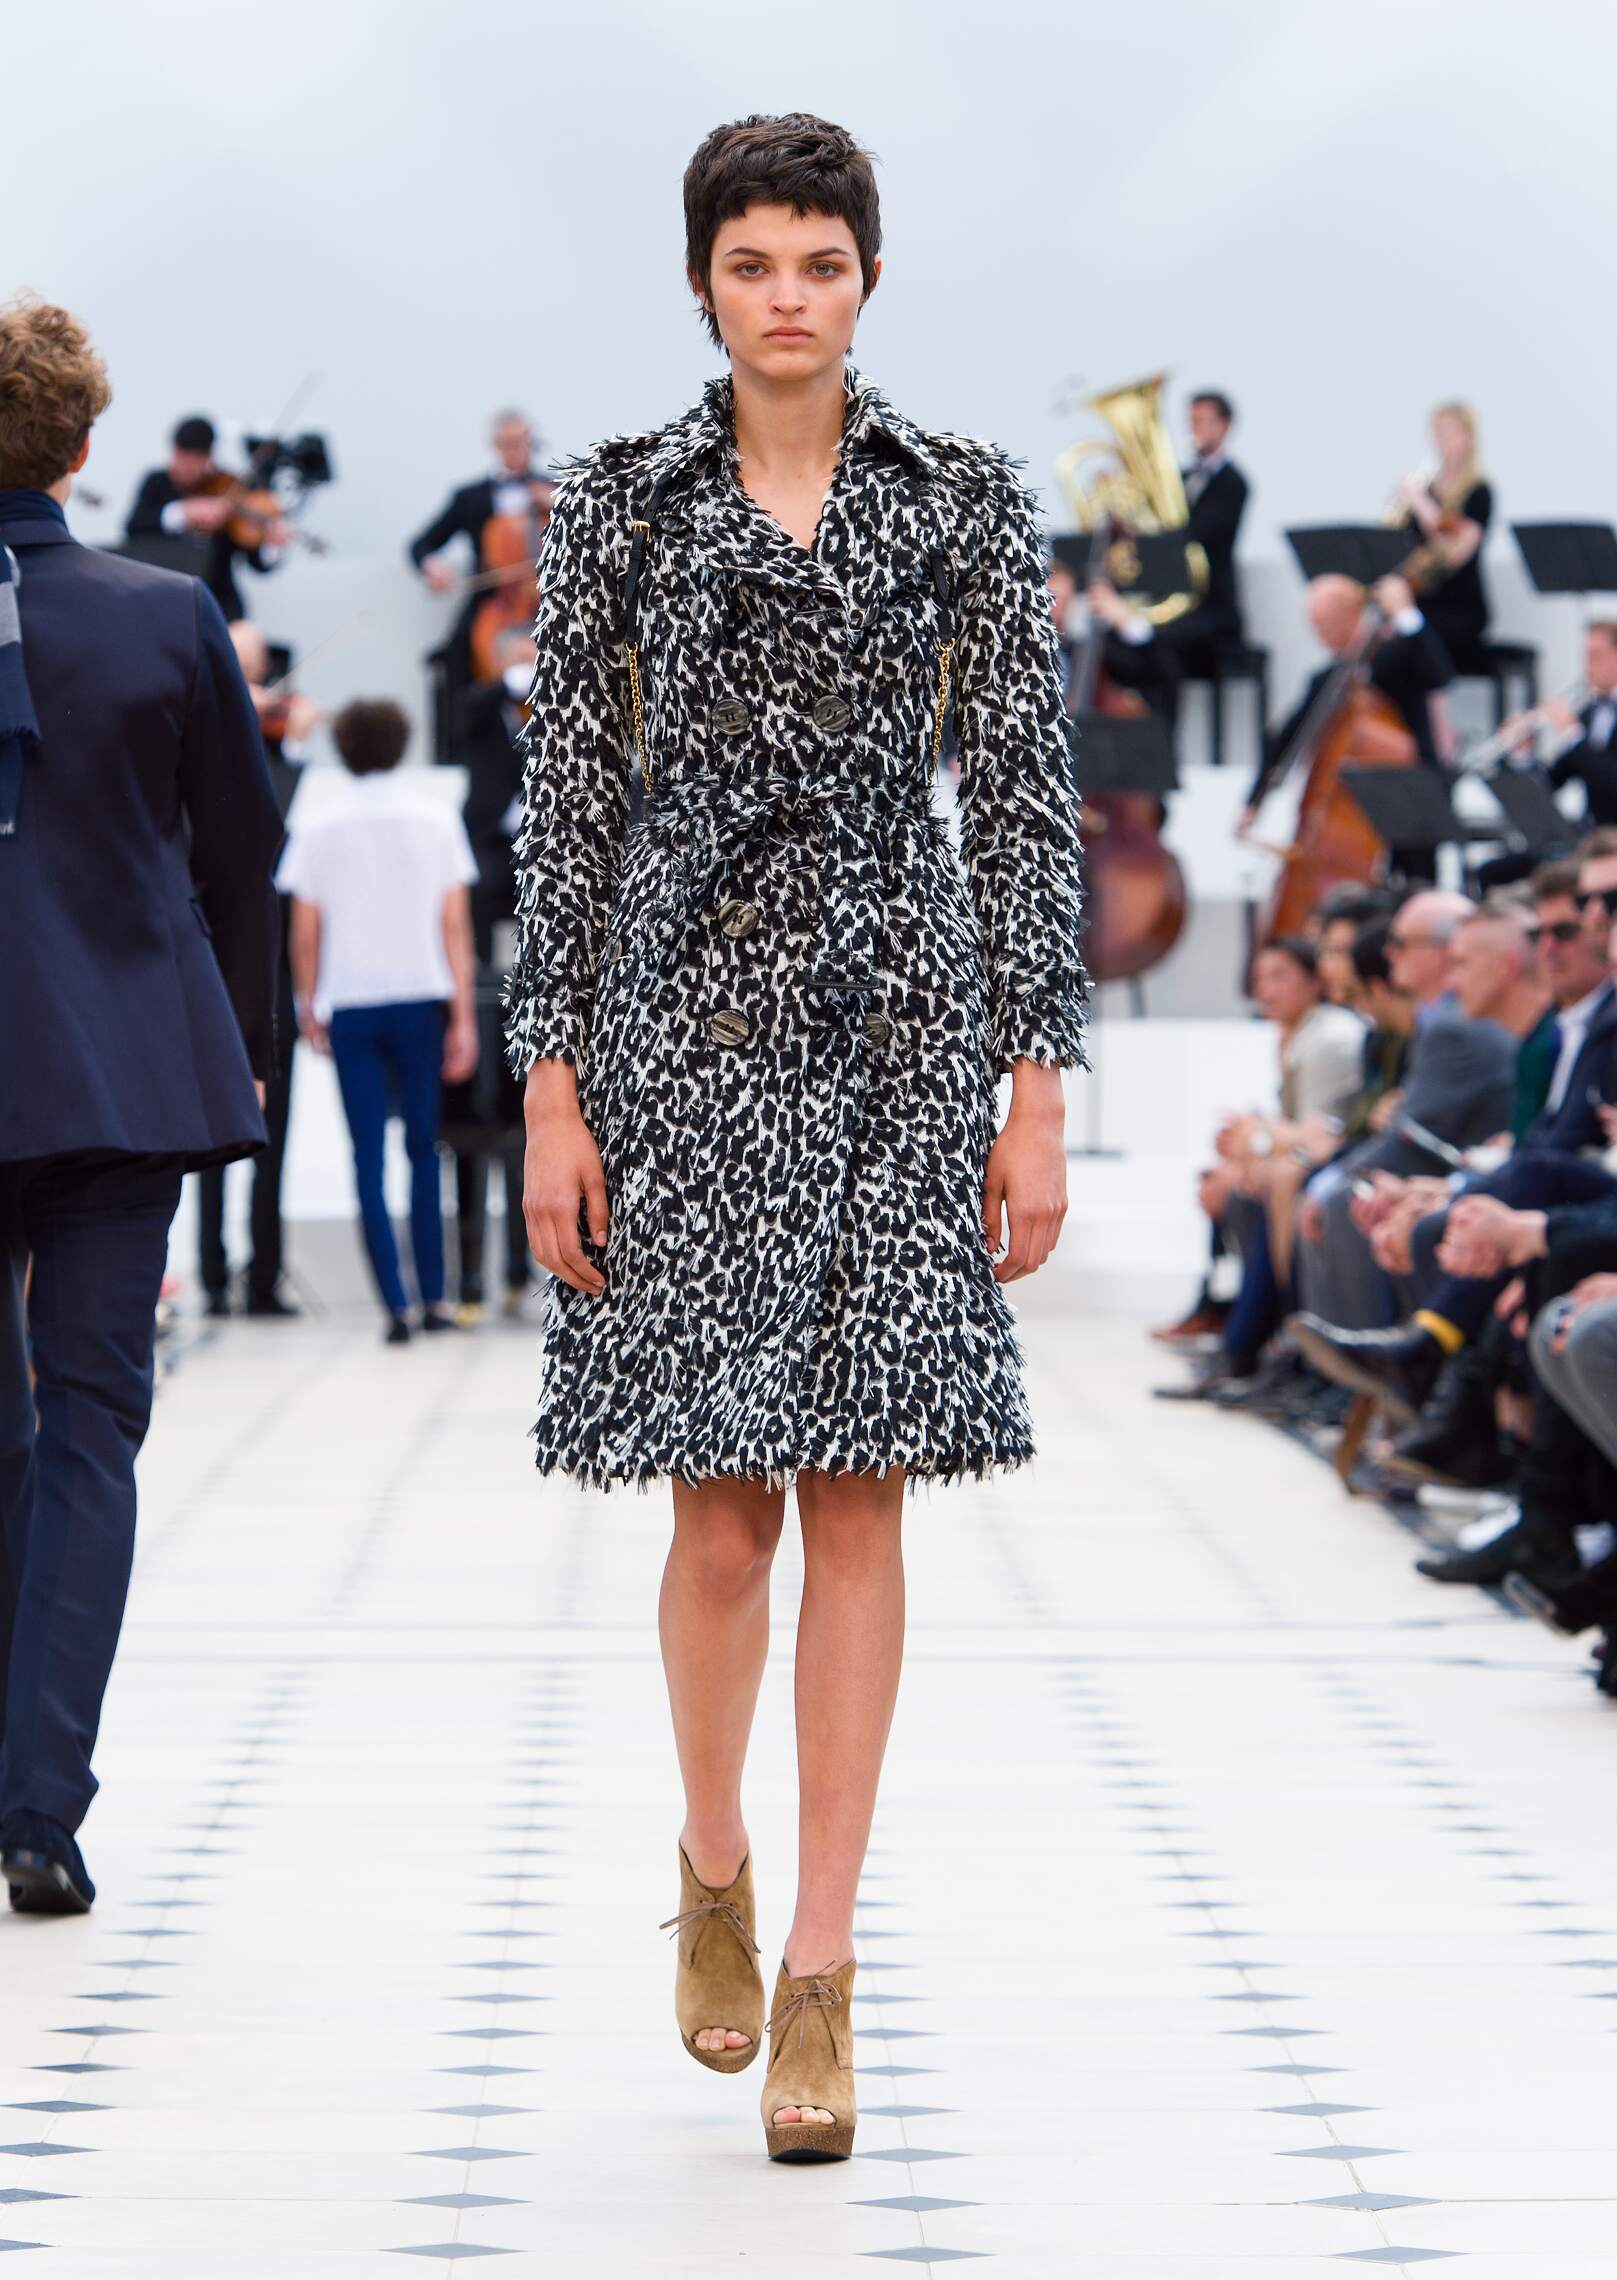 2016 Summer Fashion Show Burberry Prorsum Collection